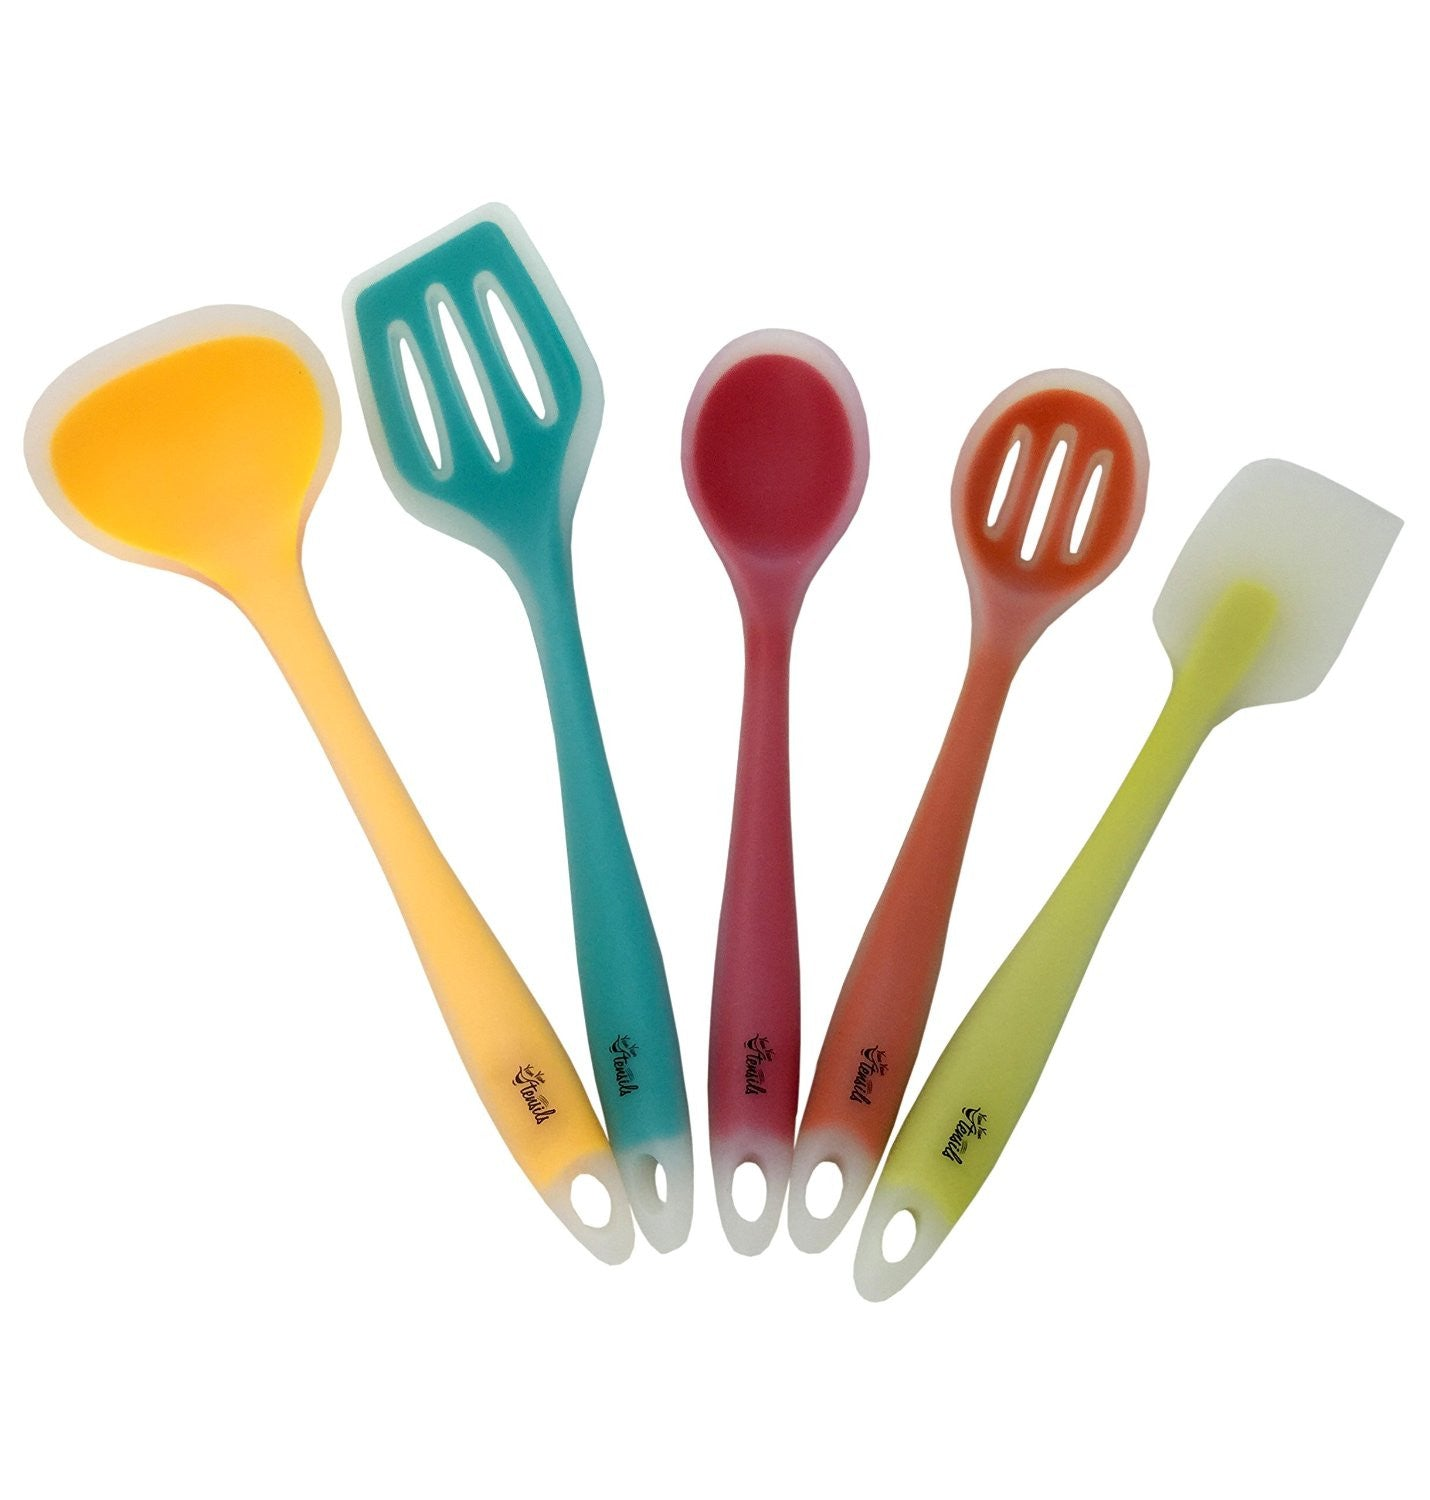 Silicone Cooking Utensils Set Of 5 For The Kitchen, One